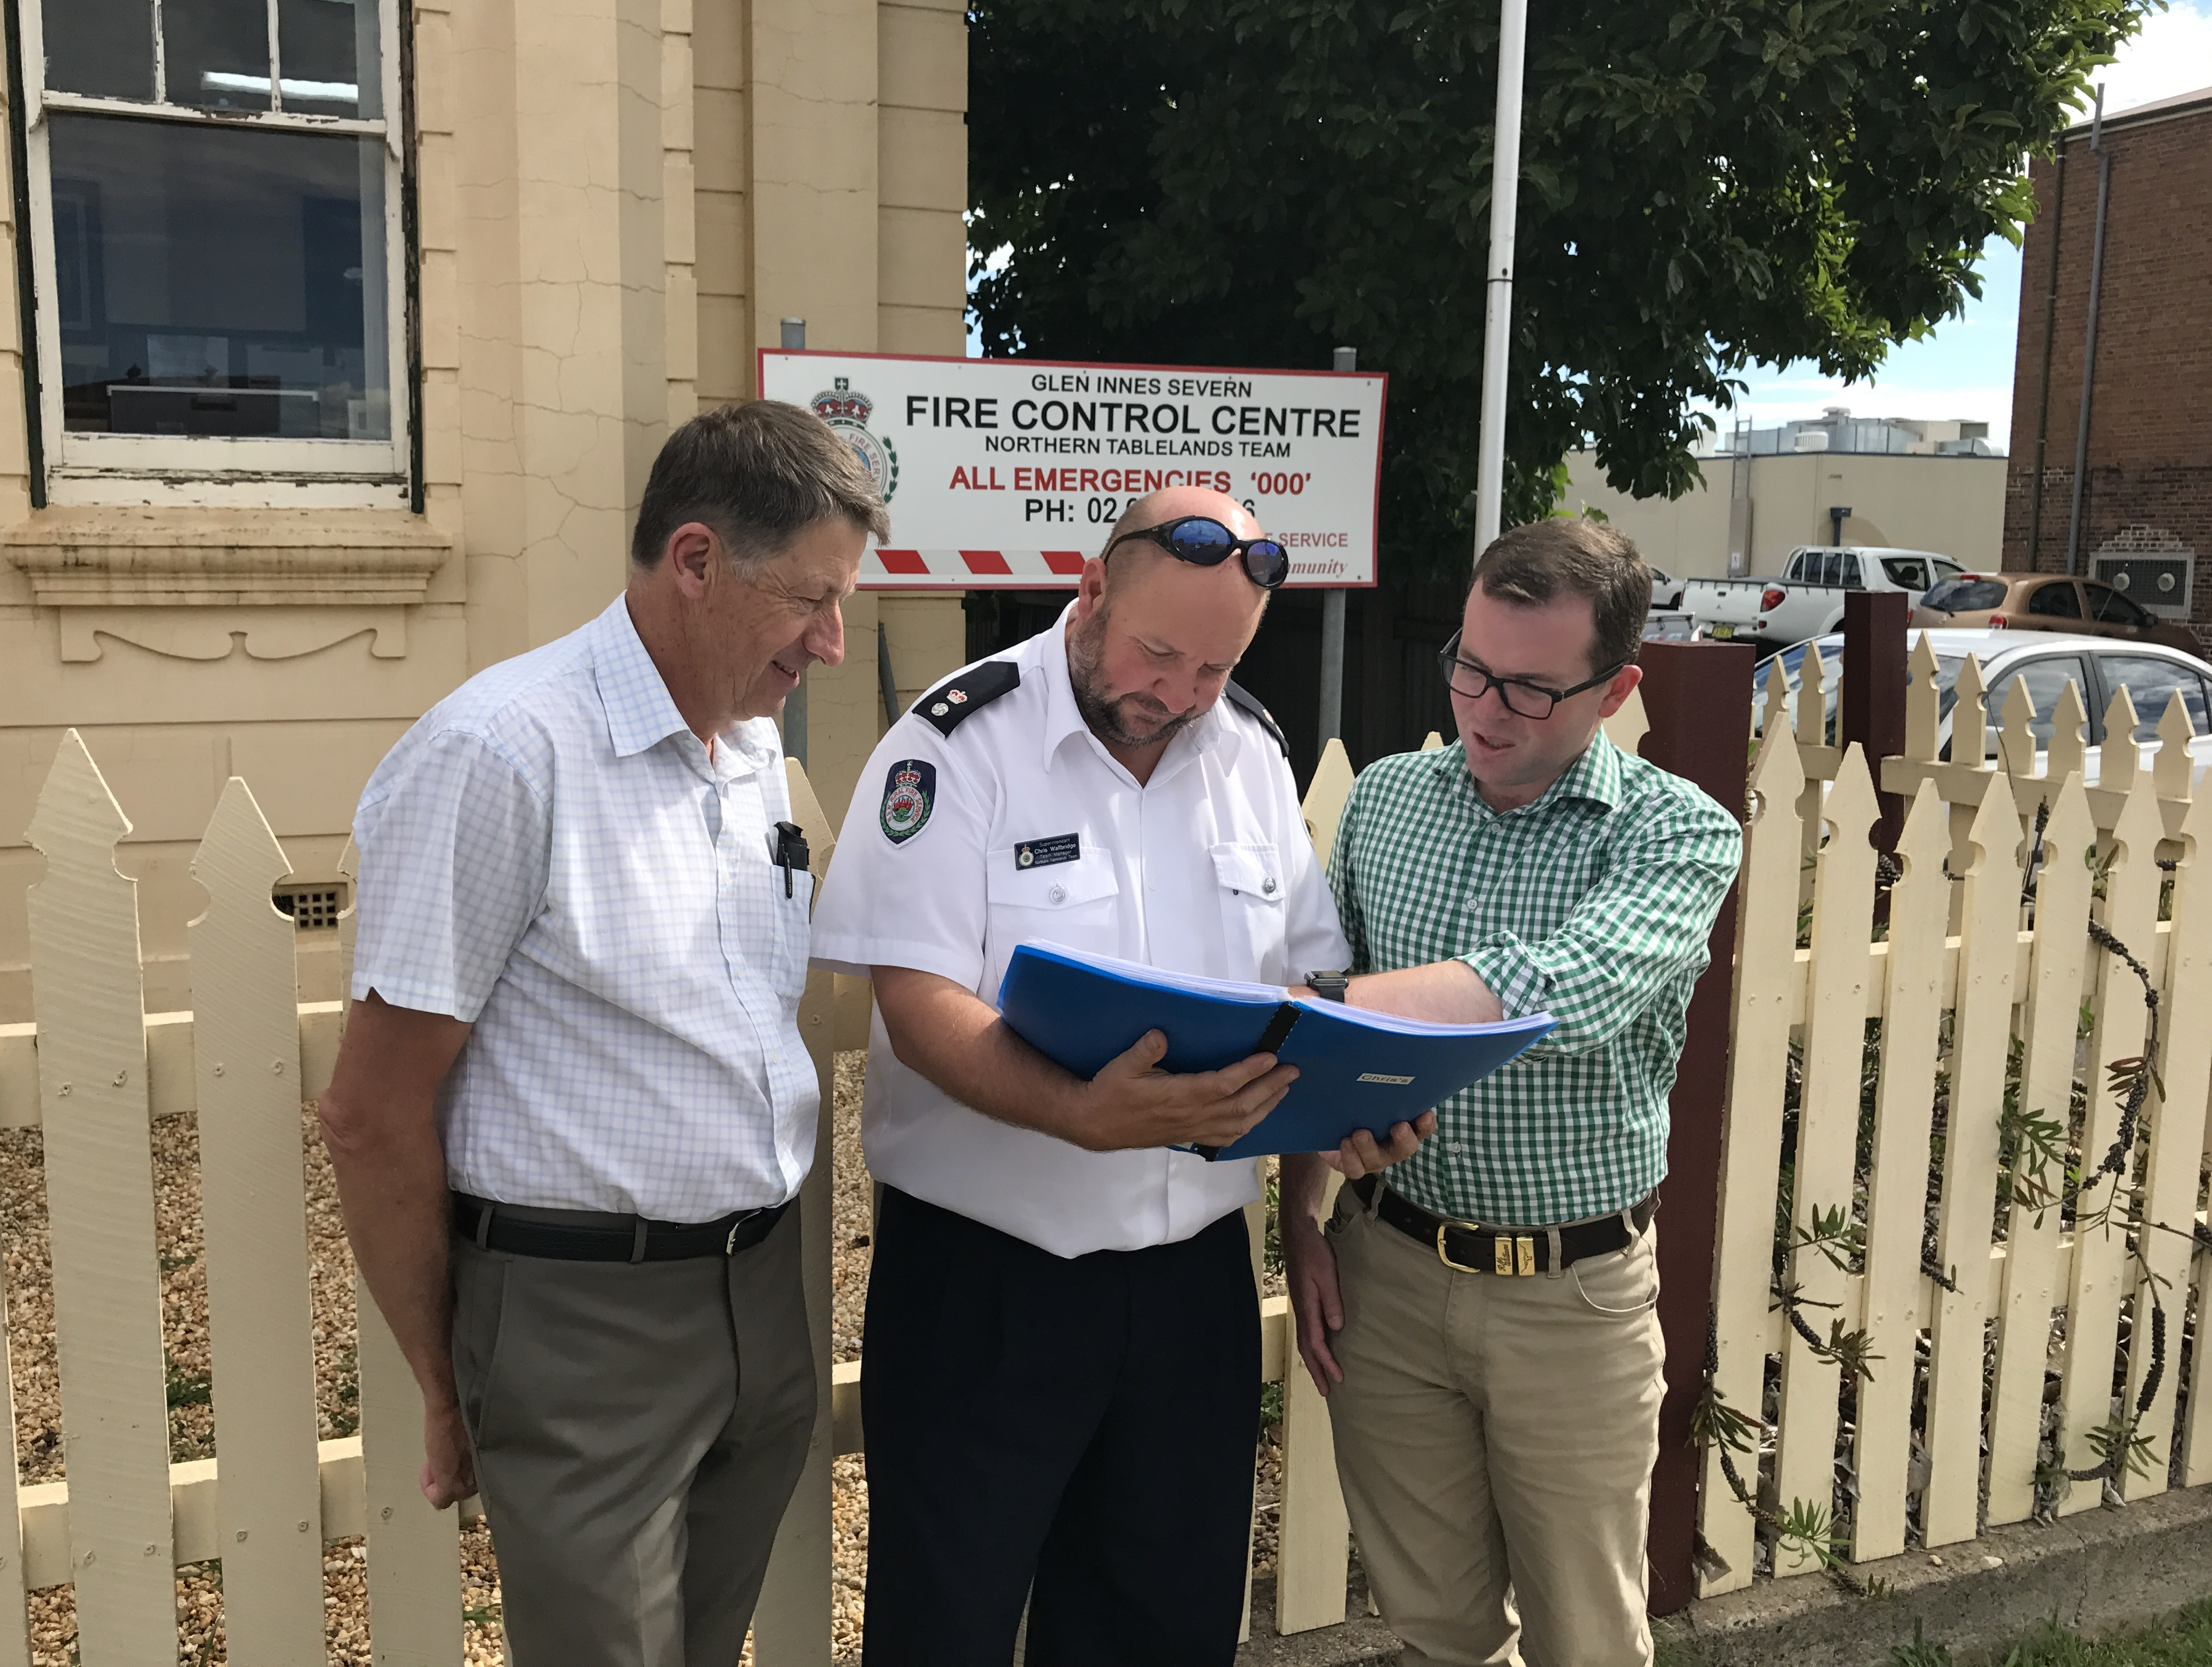 Glen Innes RFS Fire Control Centre planning